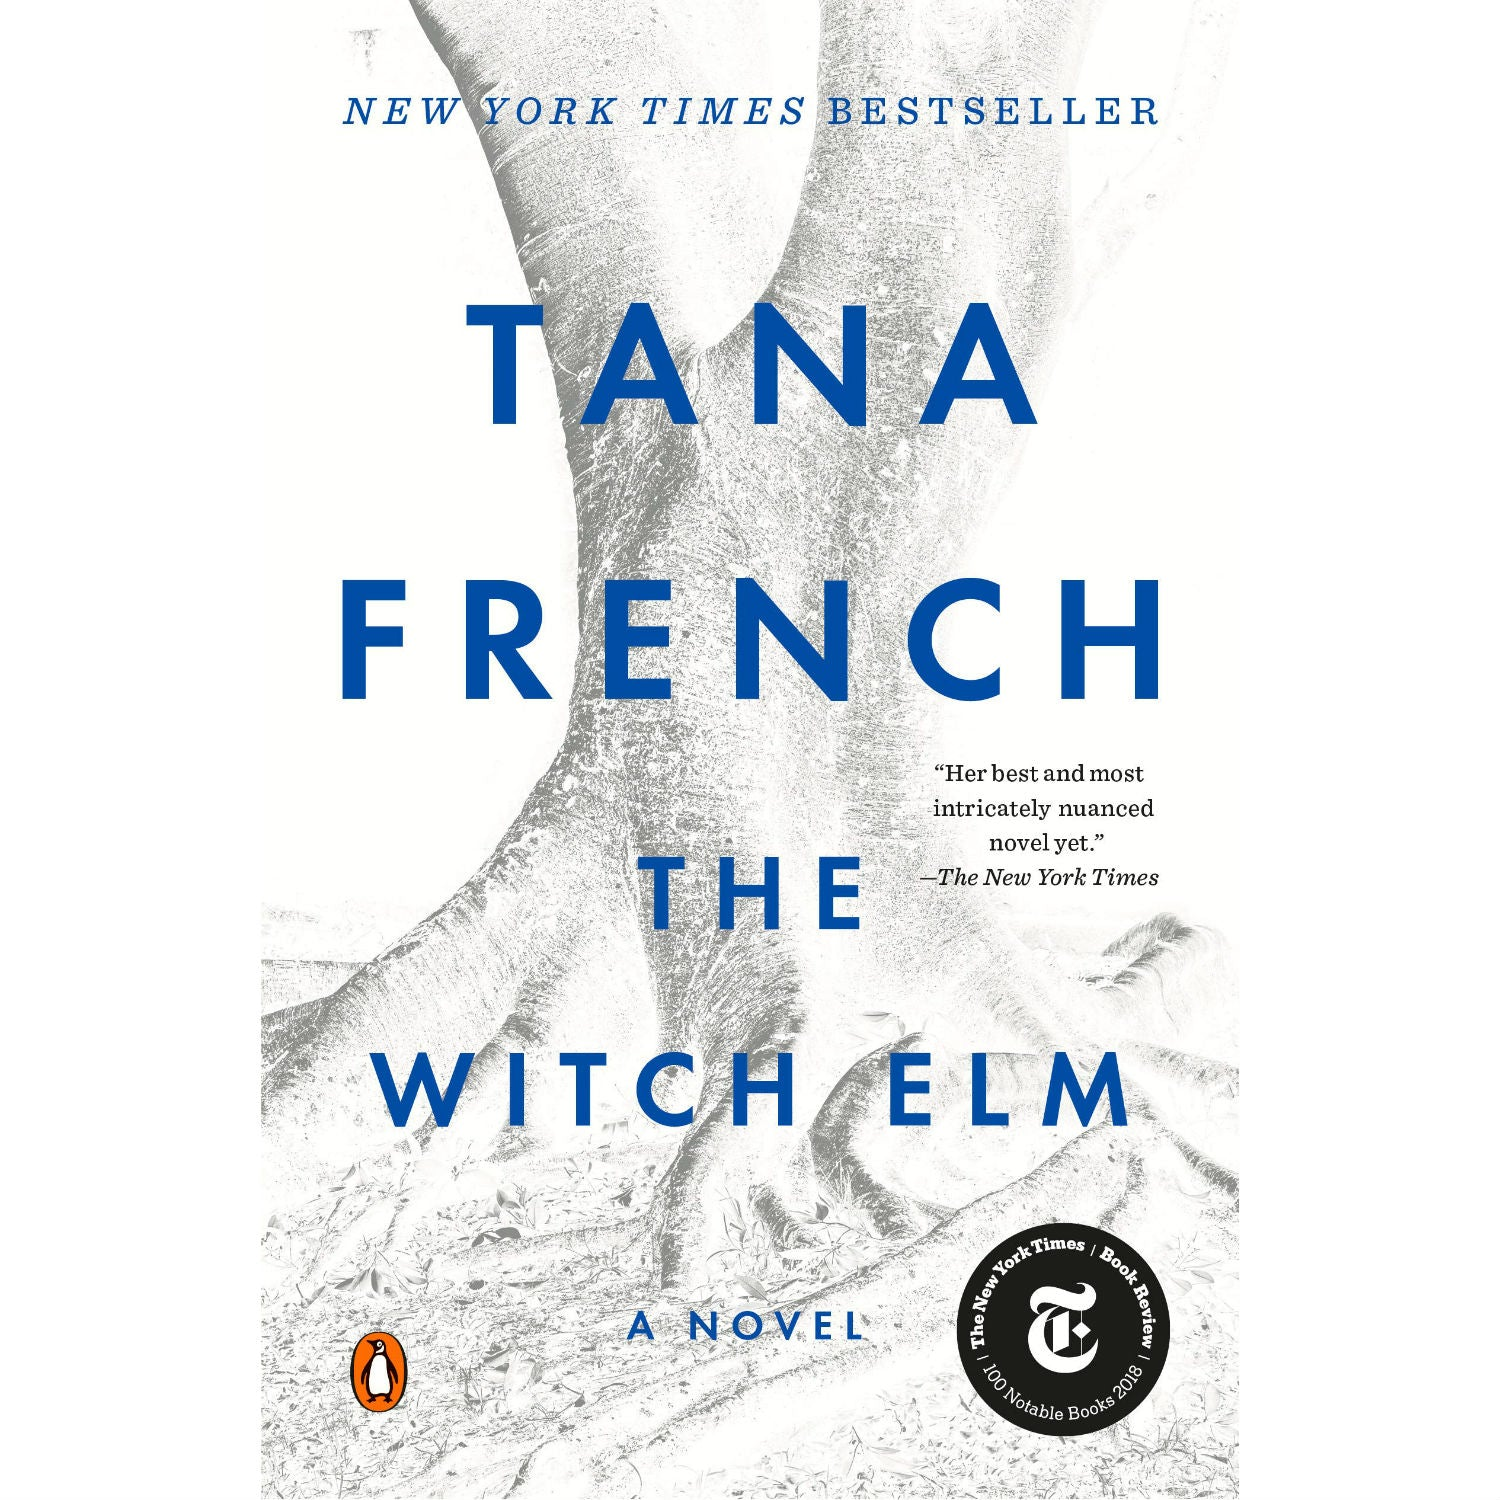 The Witch Elm (paperback)